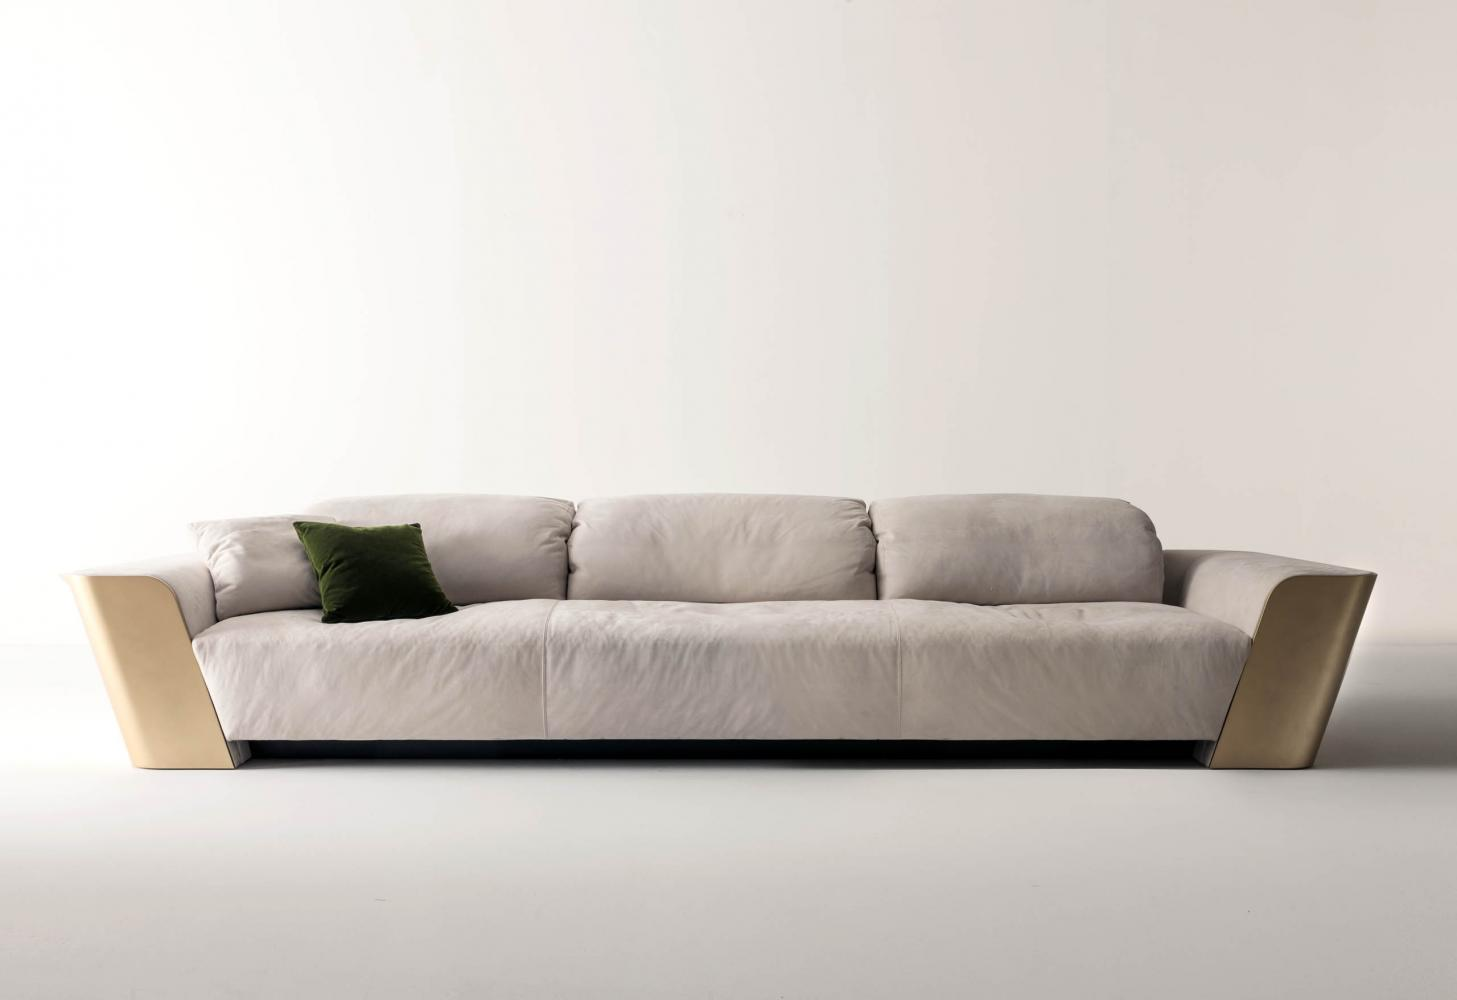 luxury modern design 3 seater sofa in white nubuk leather and gold lacquered structure